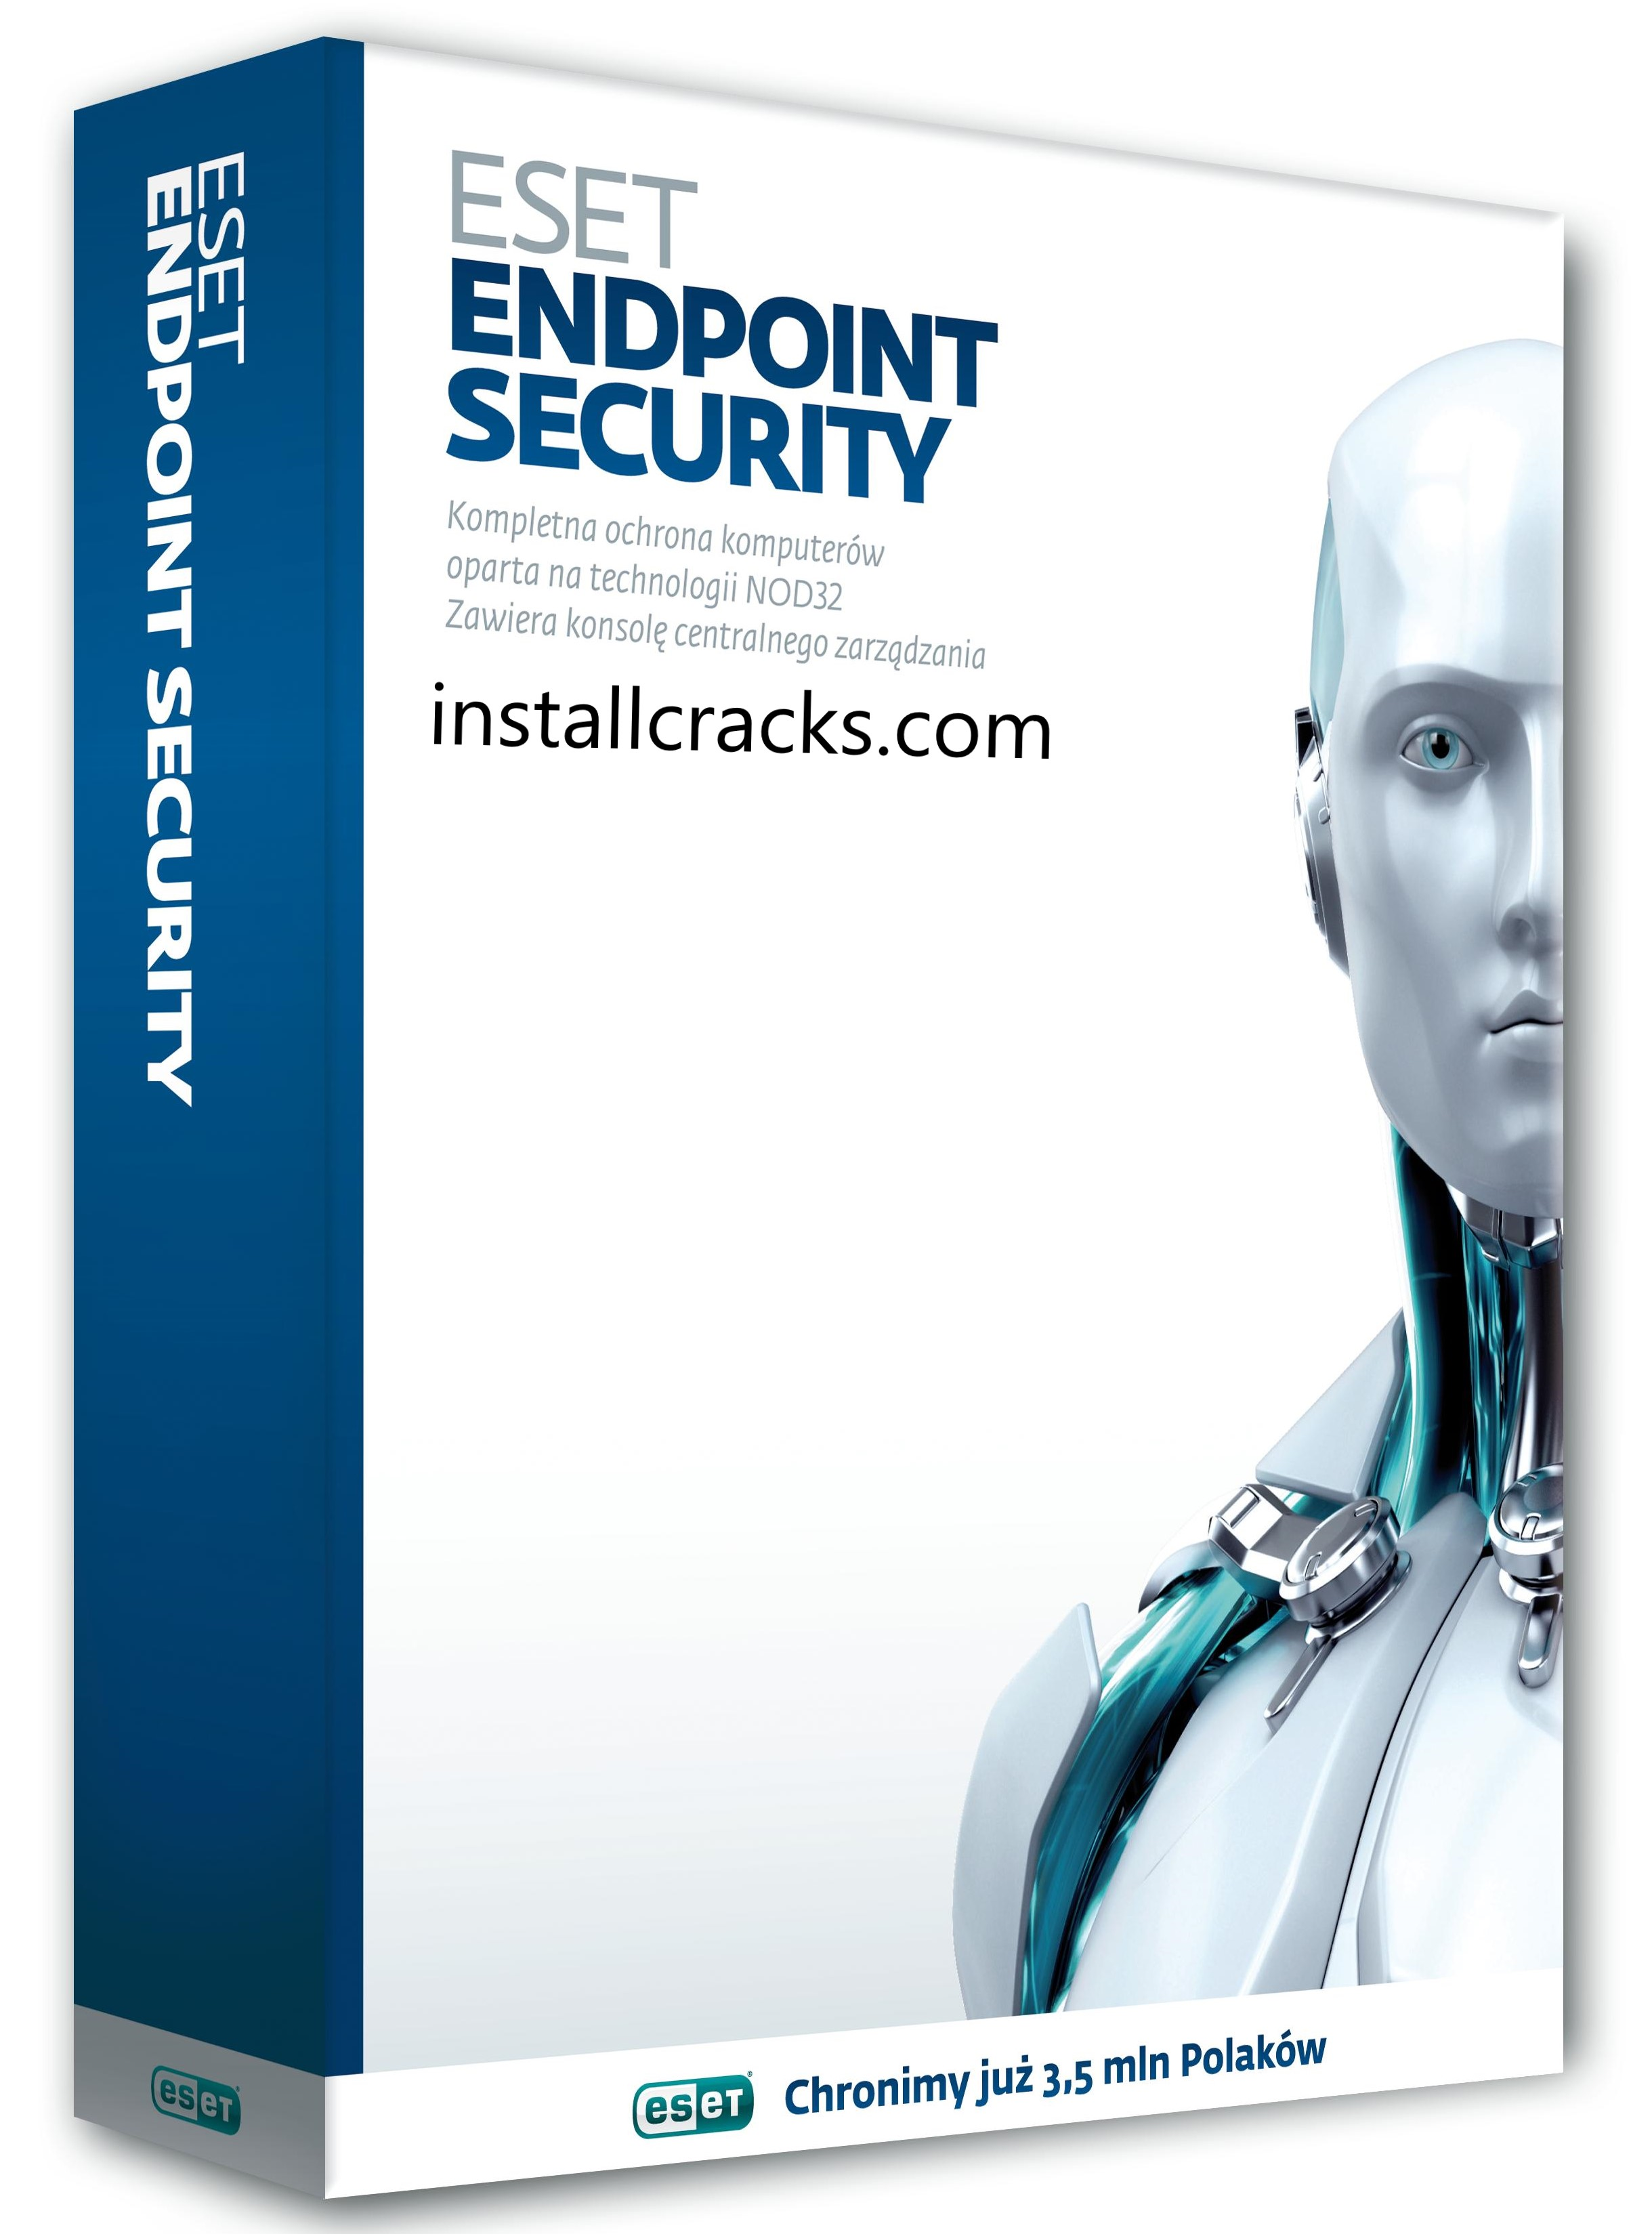 ESET Endpoint Security Crack + License Key 2020 Free Download